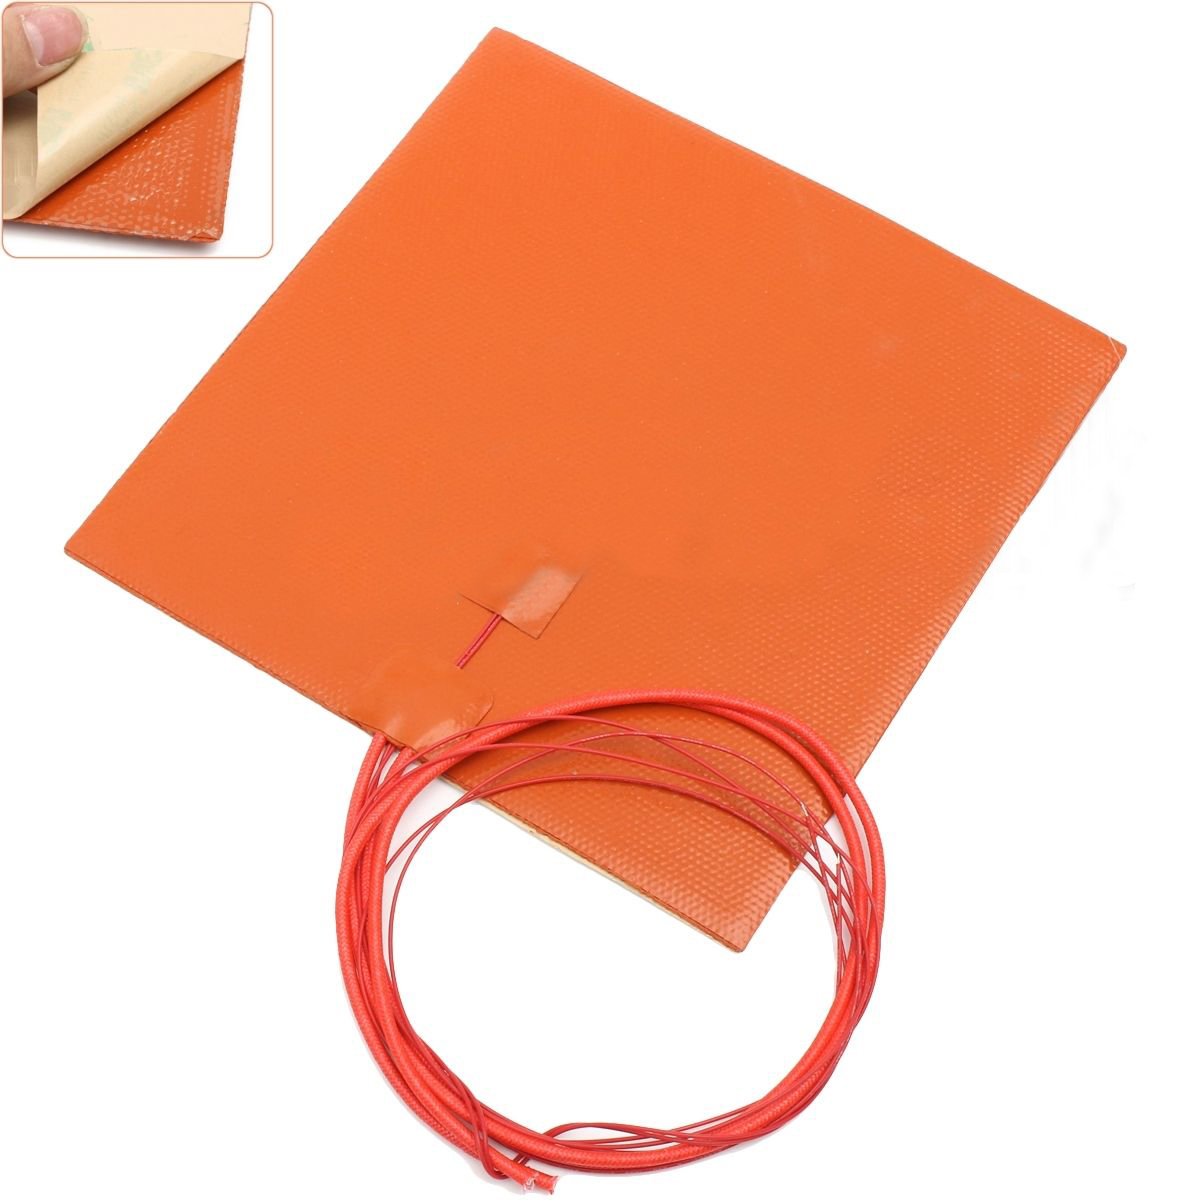 Mayitr Durable 200W 12V Silicone Heater Pad For 3D Printer Heated Bed Thermal Conversion Heating Mat With Lead Wire 200*200mm 150x150mm 150w 12v silicone heater pad for 3d printer heated bed 3m psa ntc100k silicone heating element pad mat flexible heater